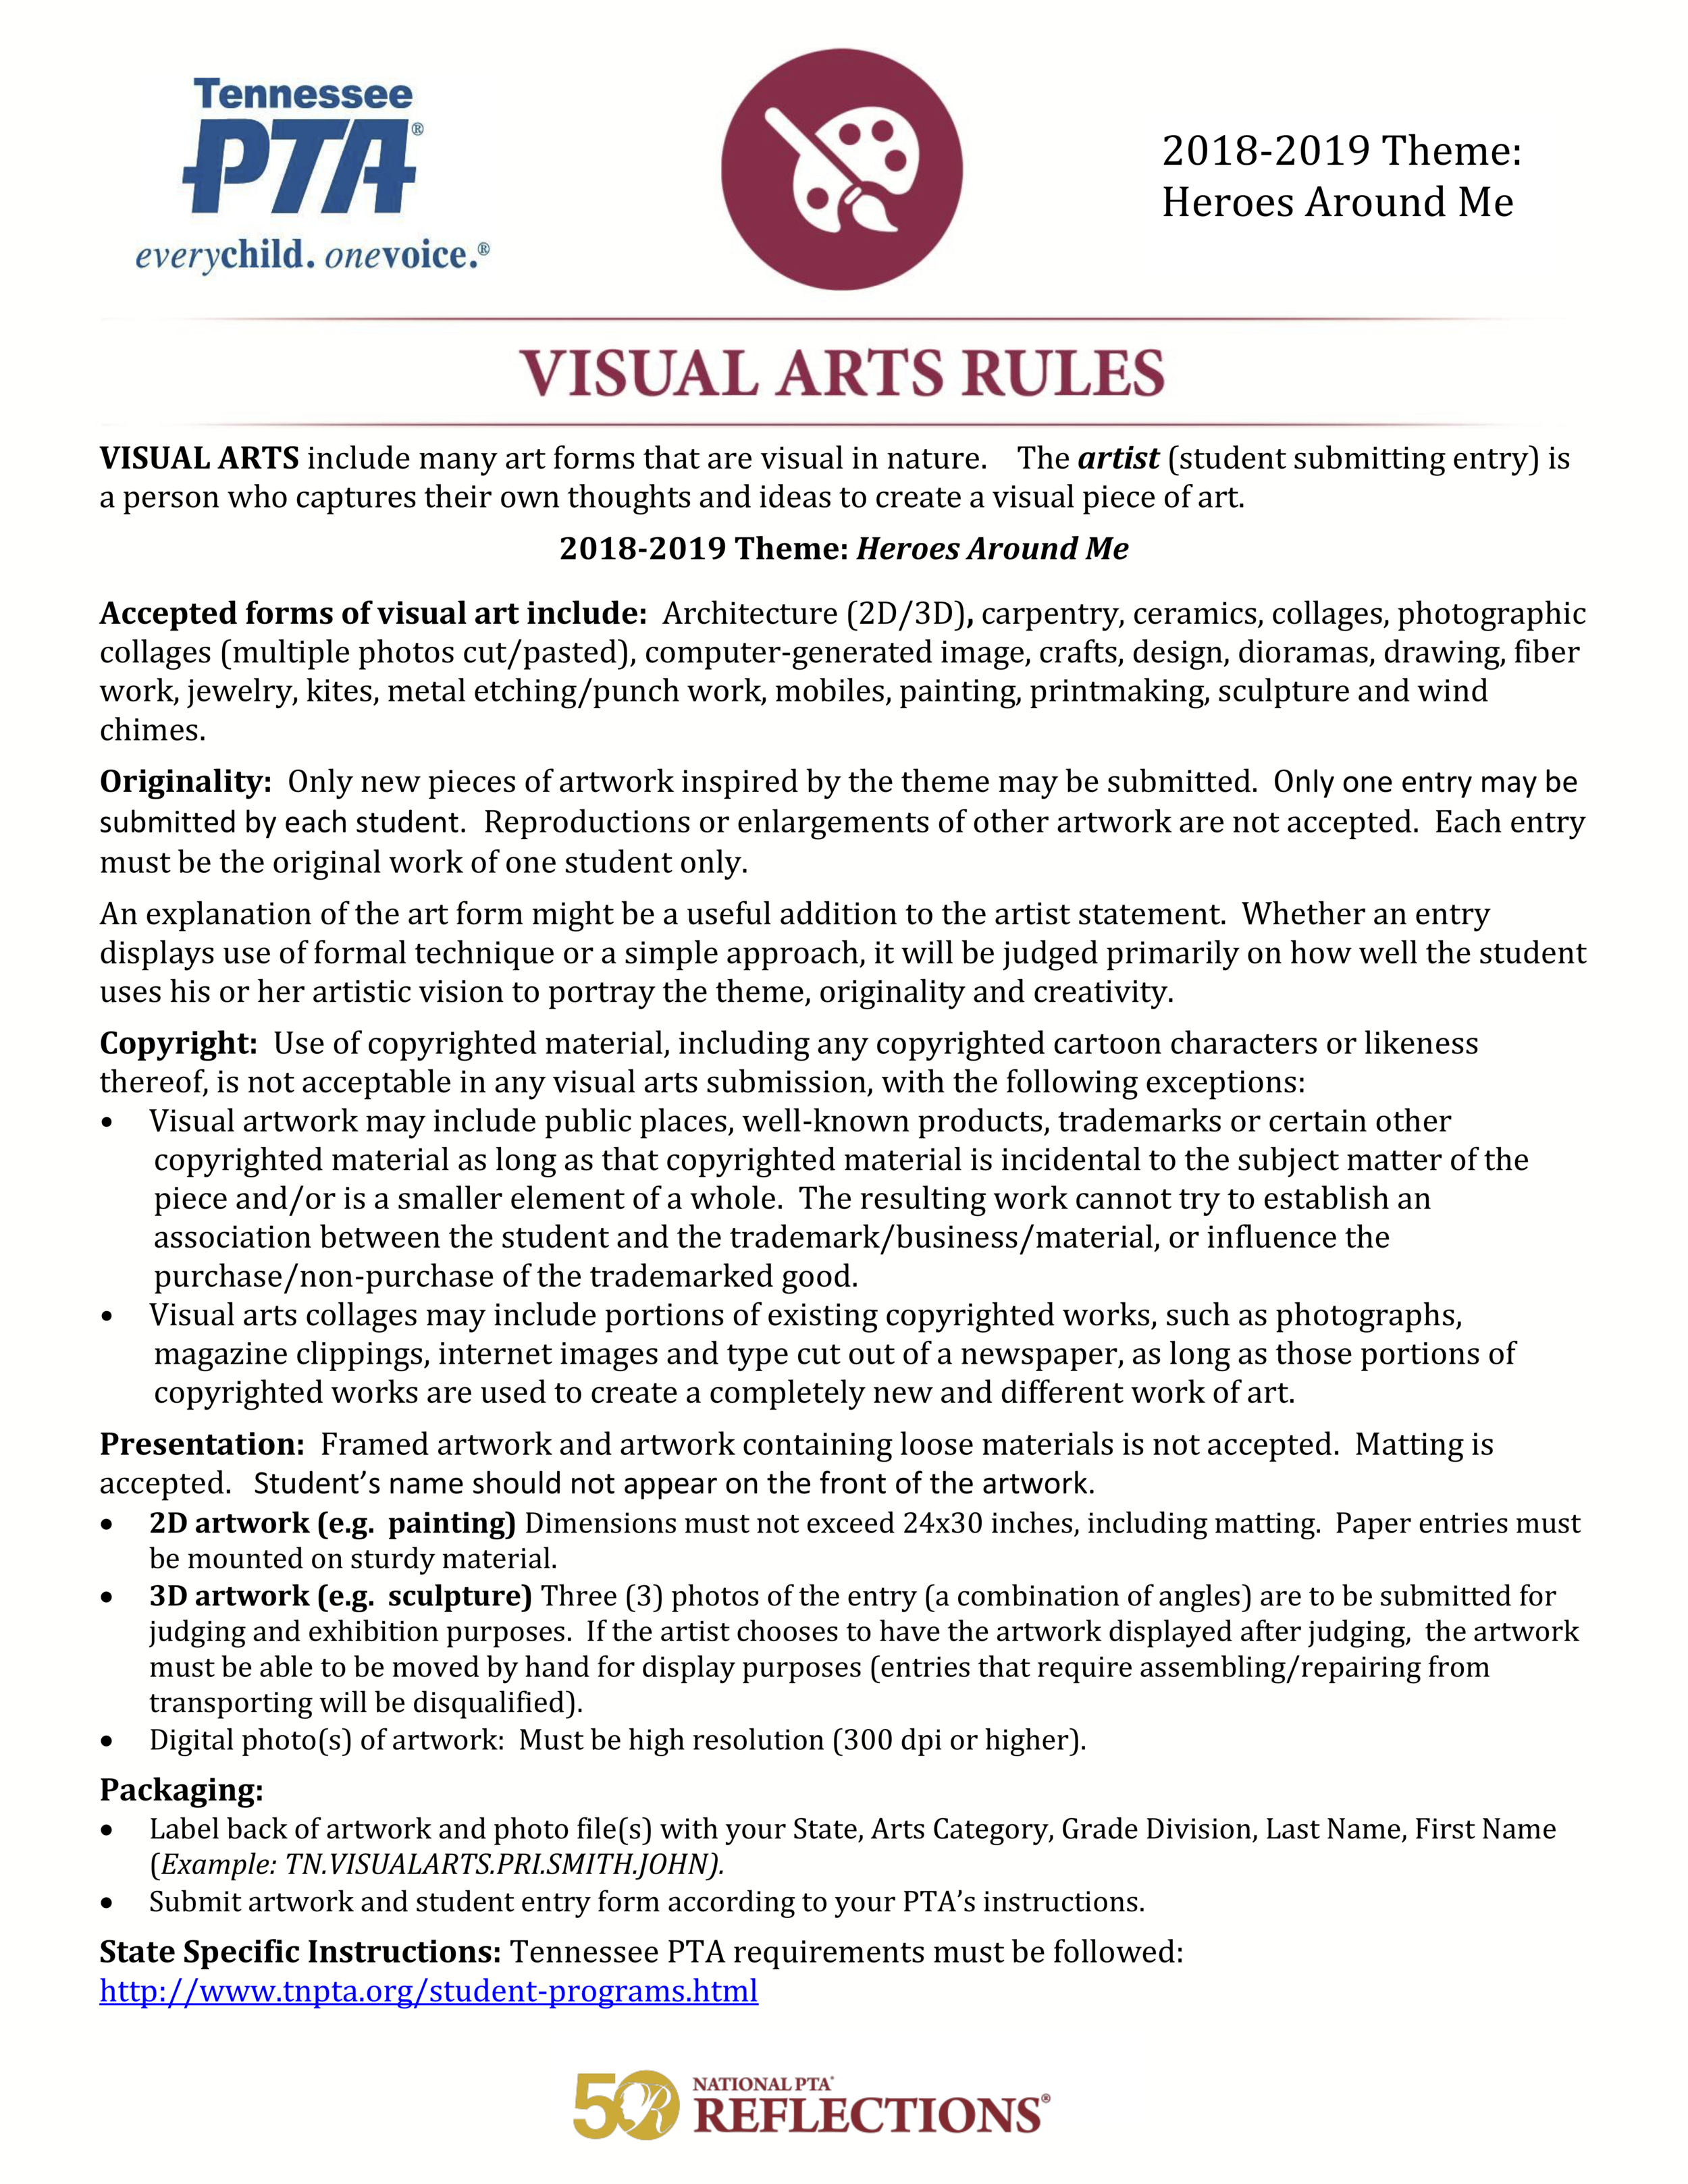 18-19 Reflections Visual Arts Rules.png